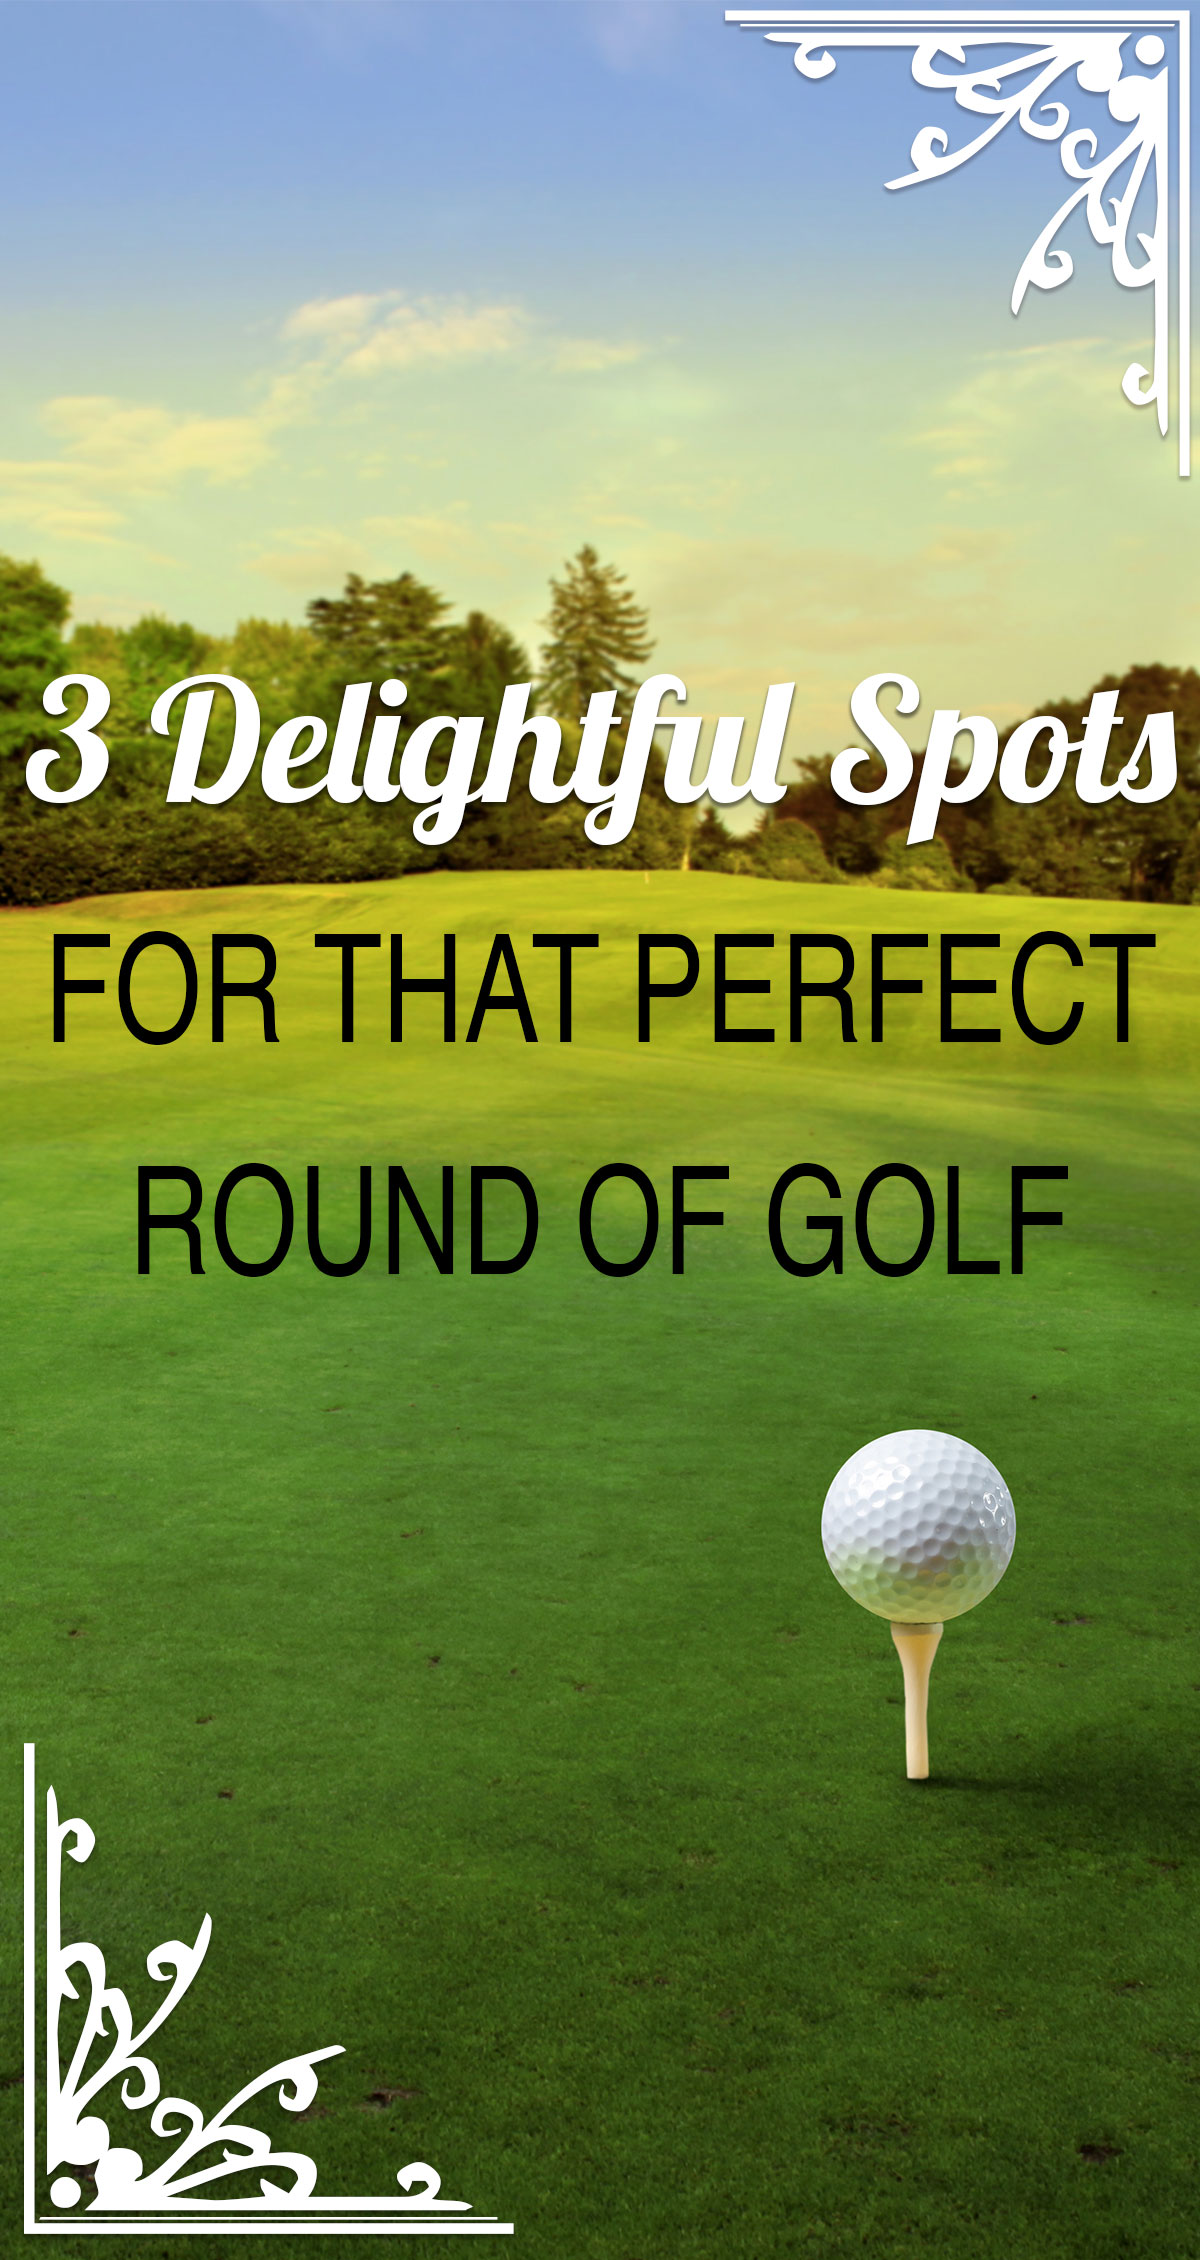 3 Delightful Spots For That Perfect Round of Golf Pin